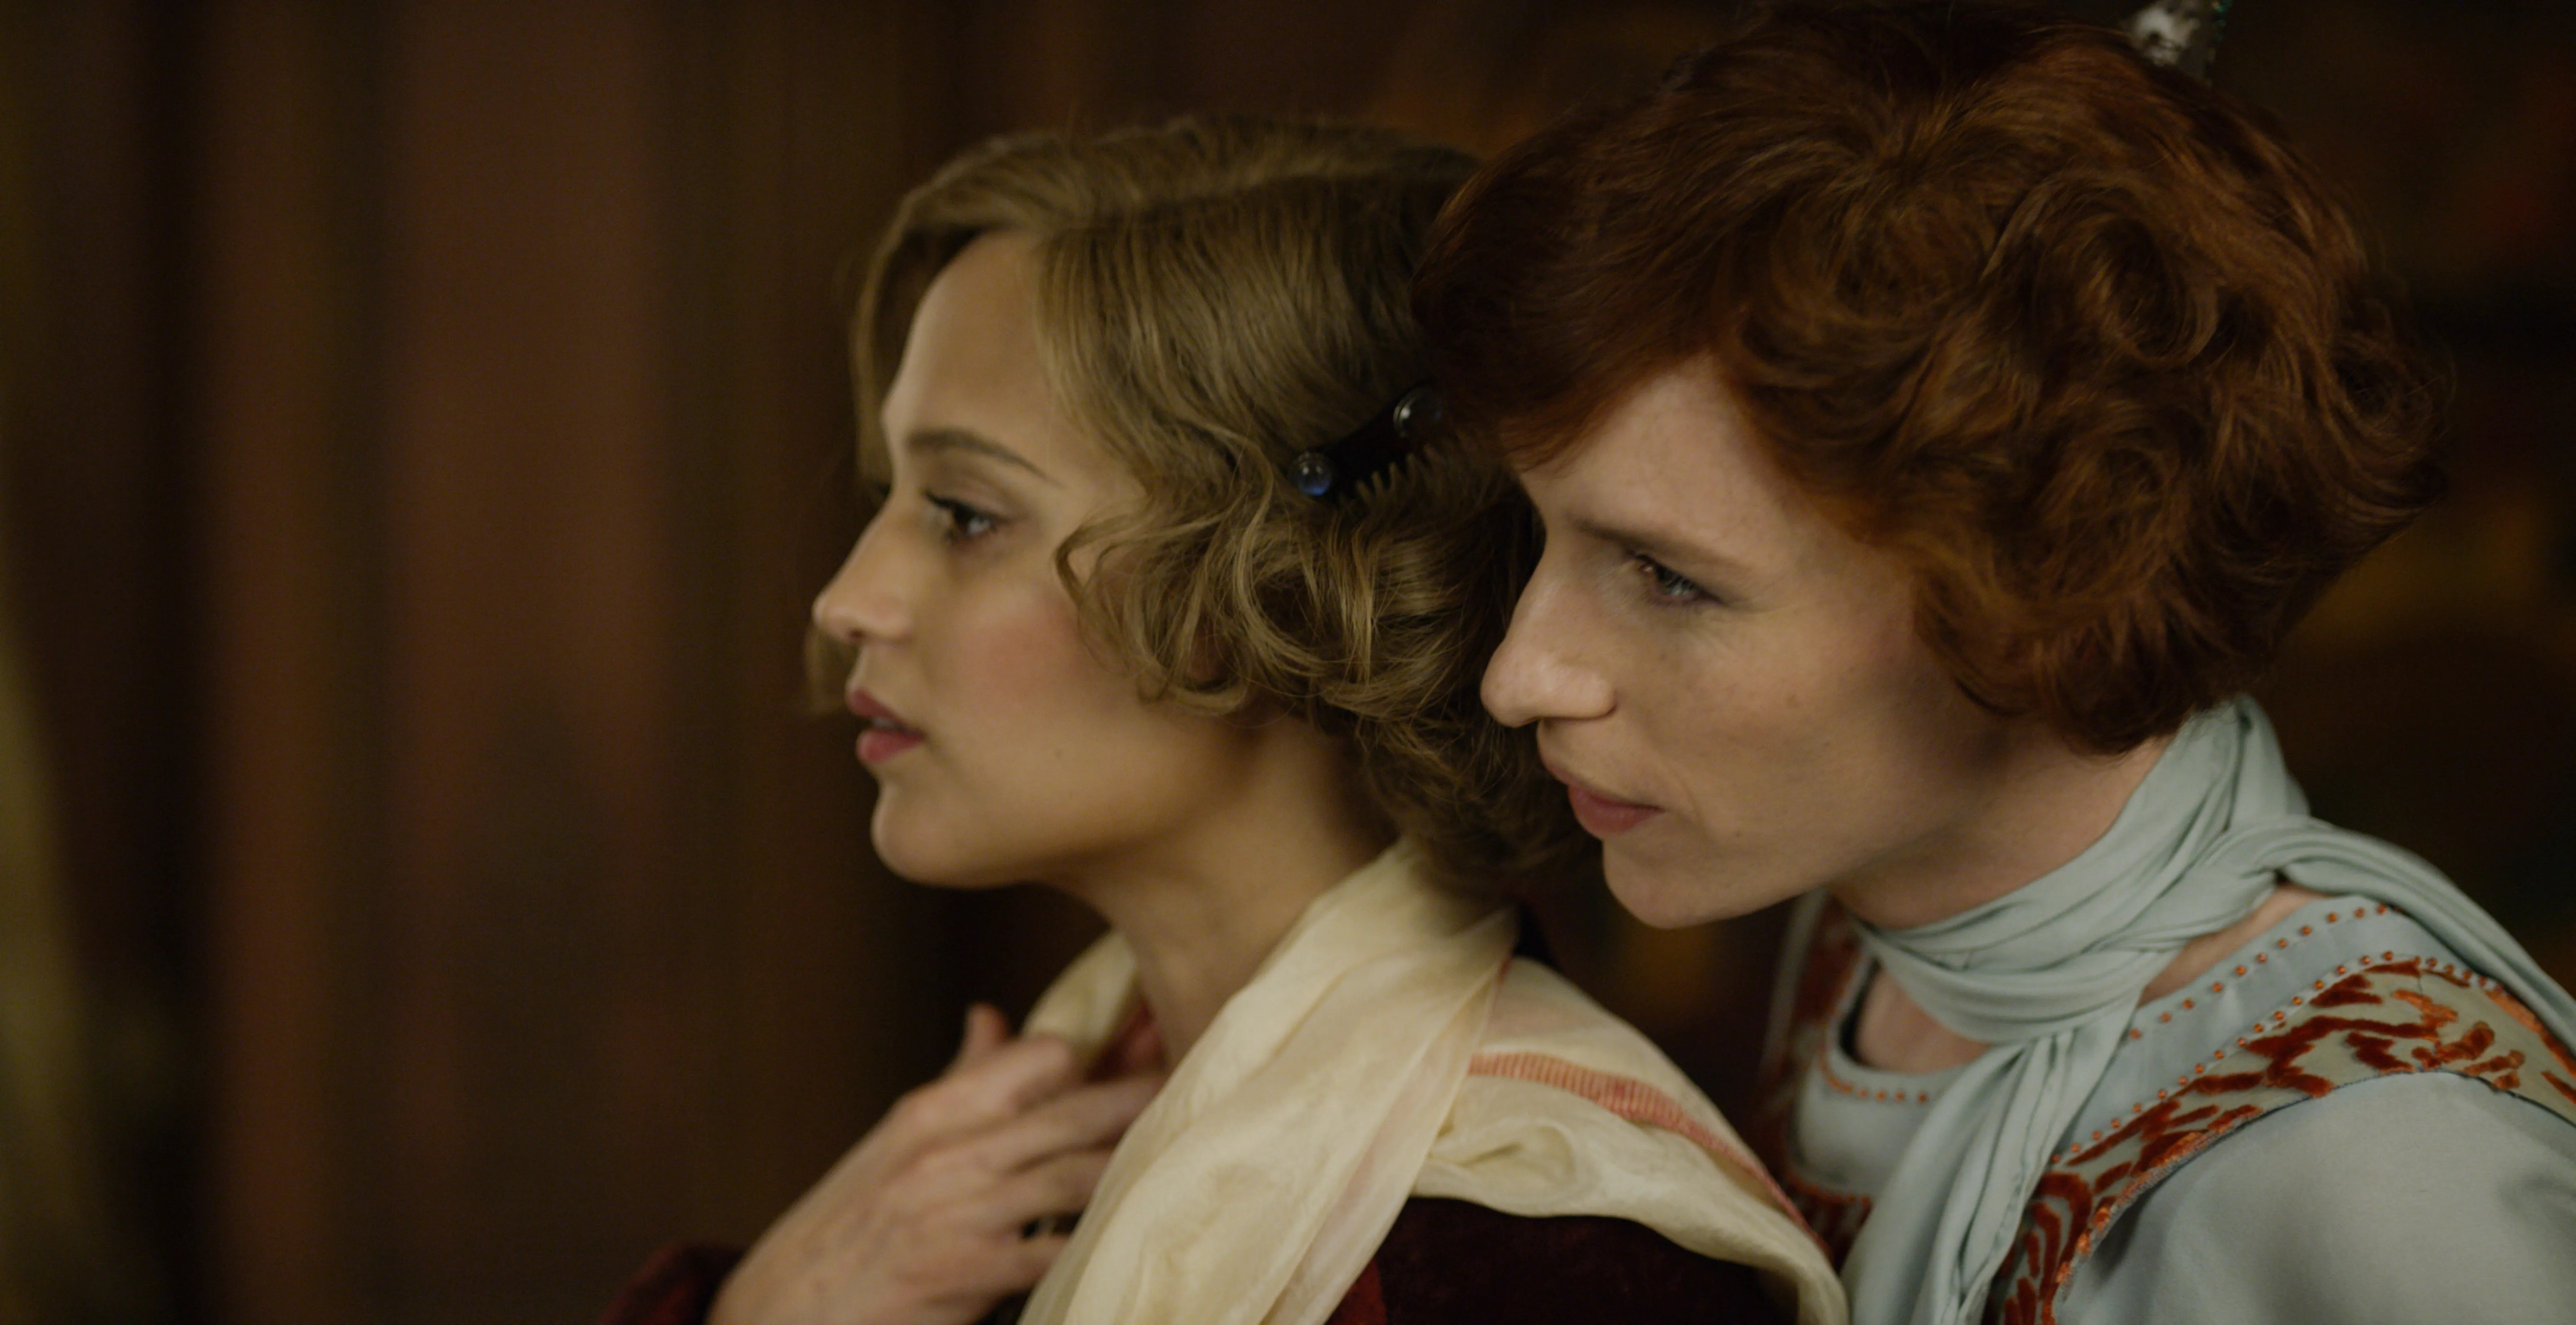 Still from The Danish Girl (2015). A close up of Gerda and Lili in profile. Gerda is facing away from Lili, who stands close behind her, looking over her shoulder in a tender moment.